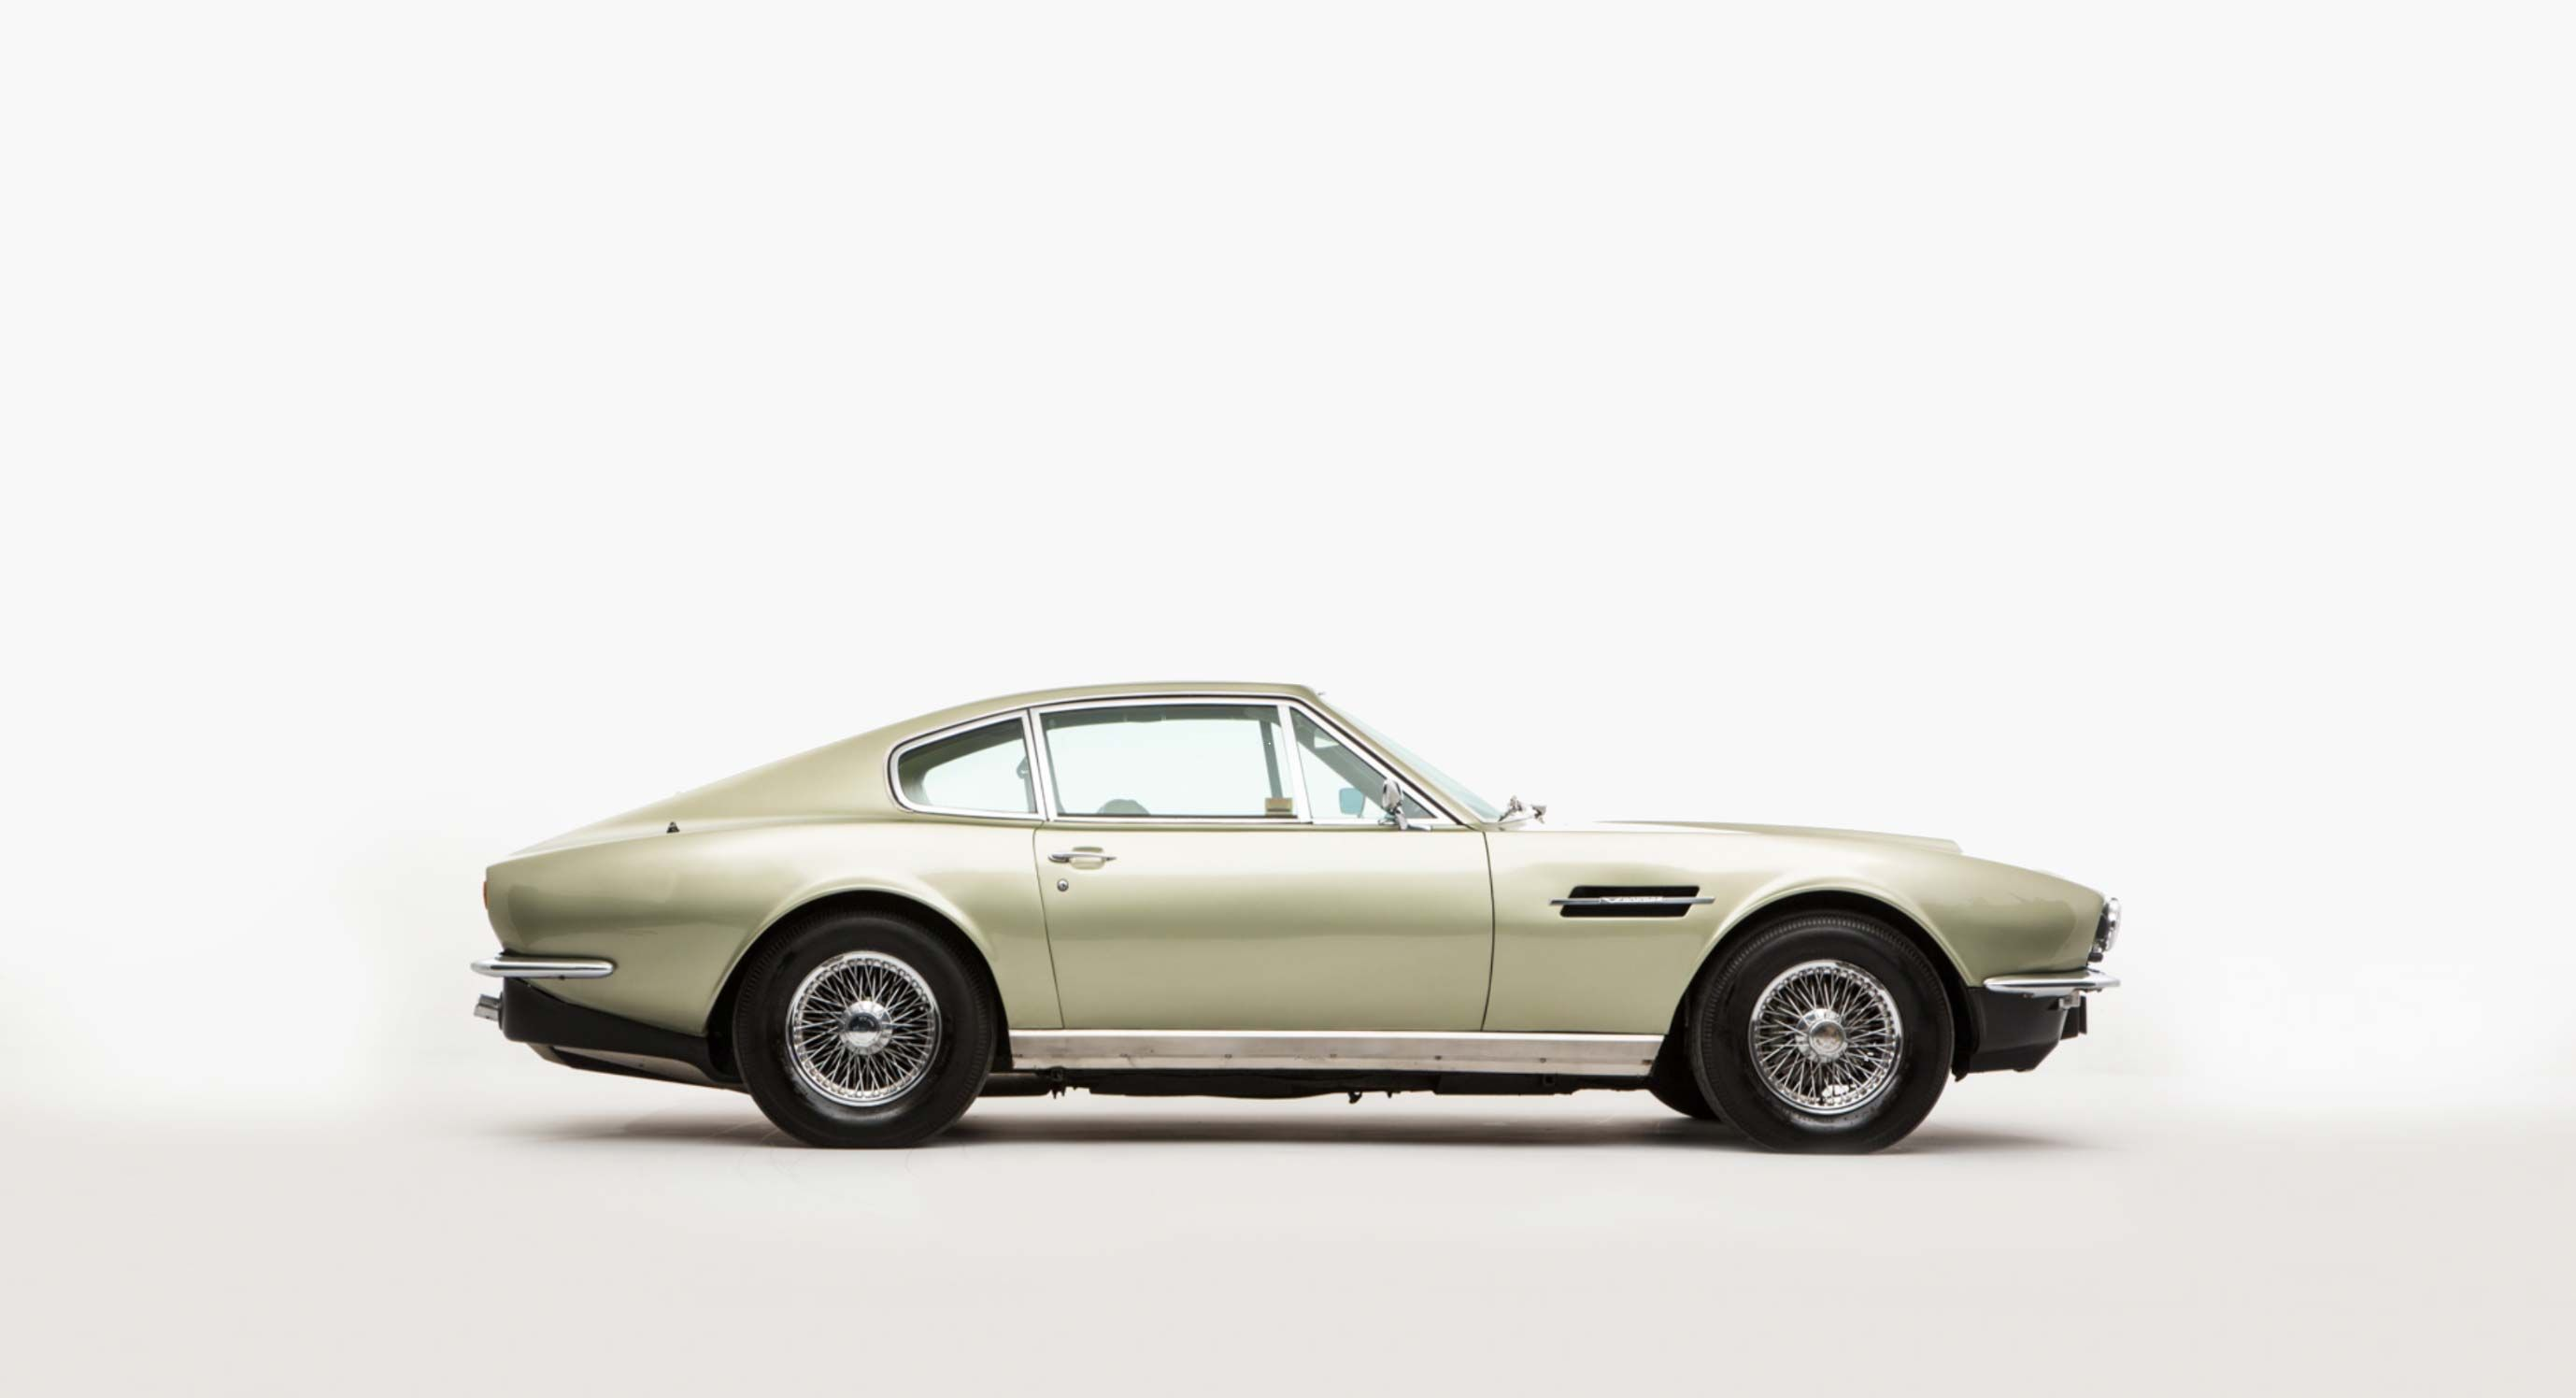 Aston Martin Vantage S Don T Usually Come This Cheap Opumo Magazine Aston Martin Vantage Aston Martin Vantage S Aston Martin